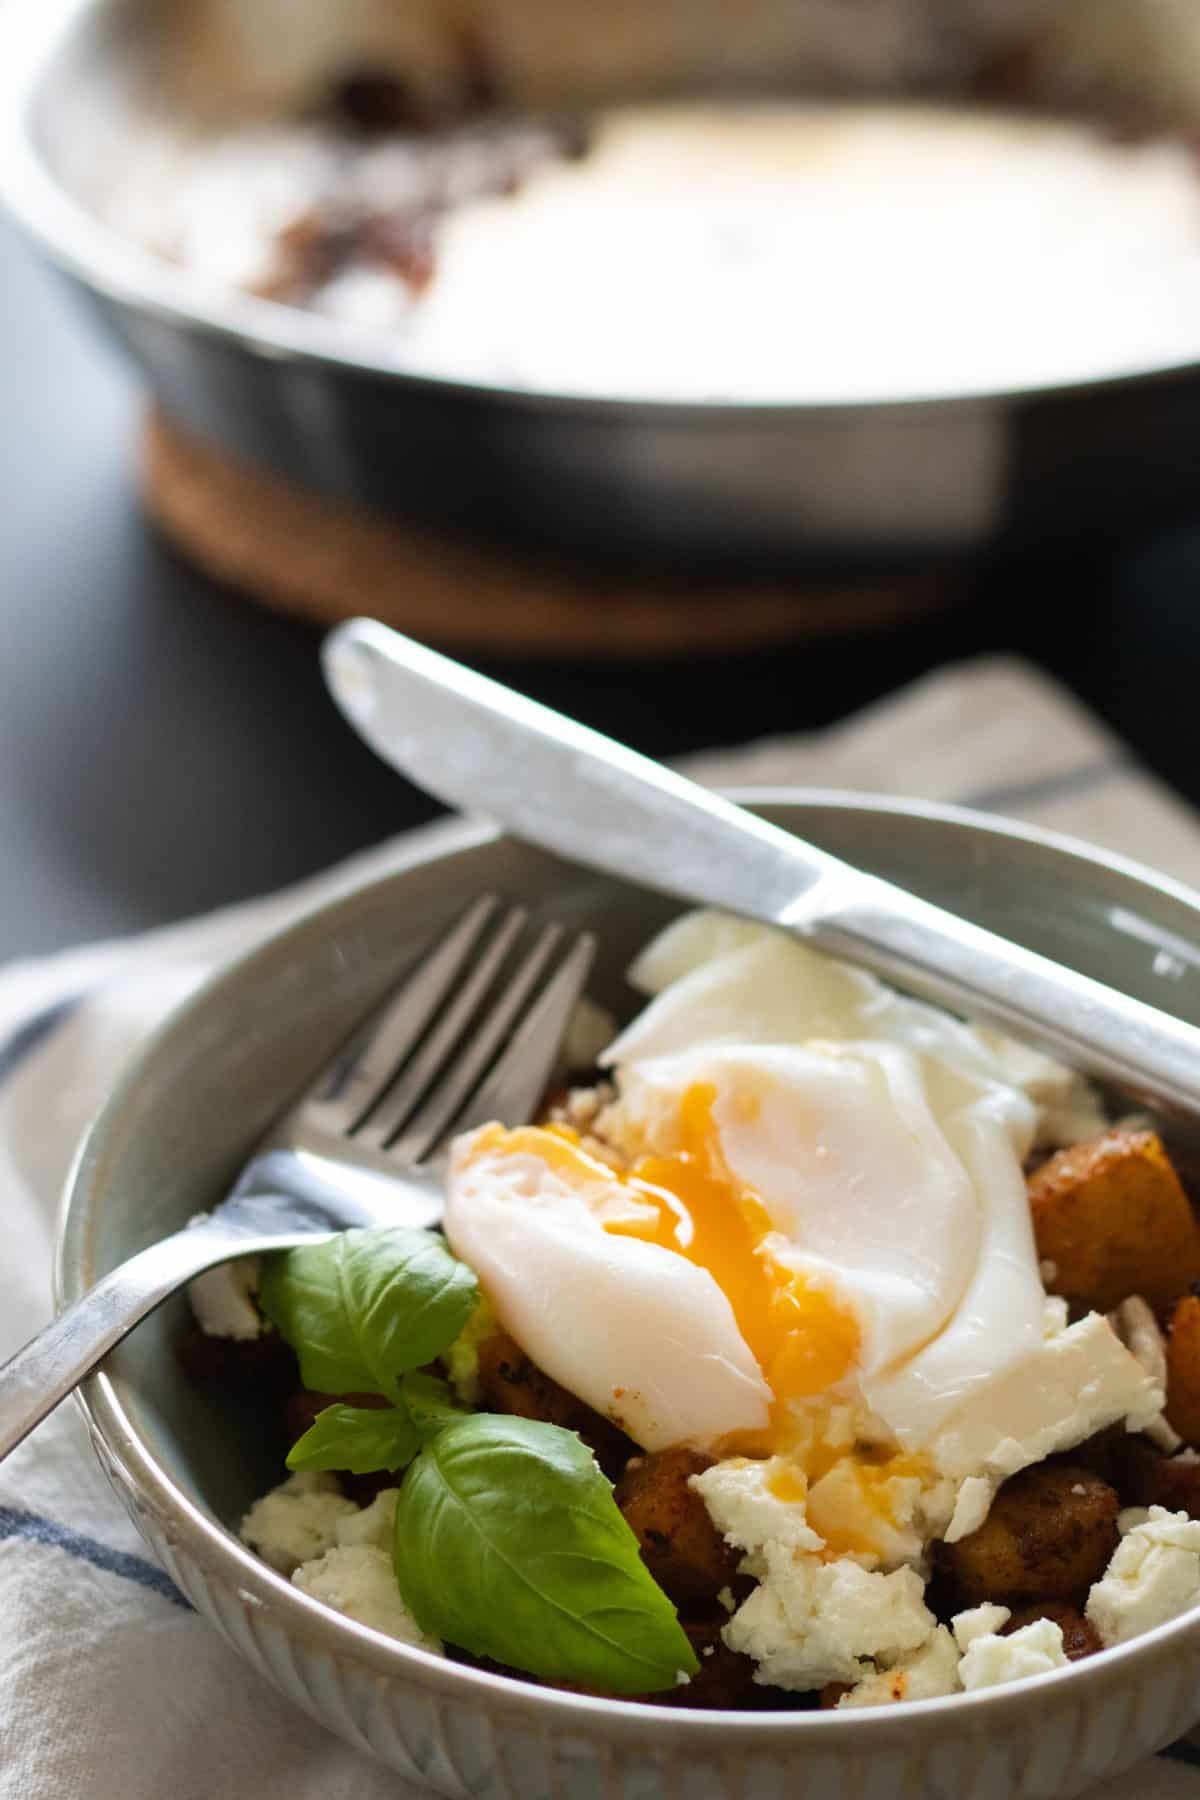 closeup sideview of a bowl with fried potatoes, feta cheese and poached egg